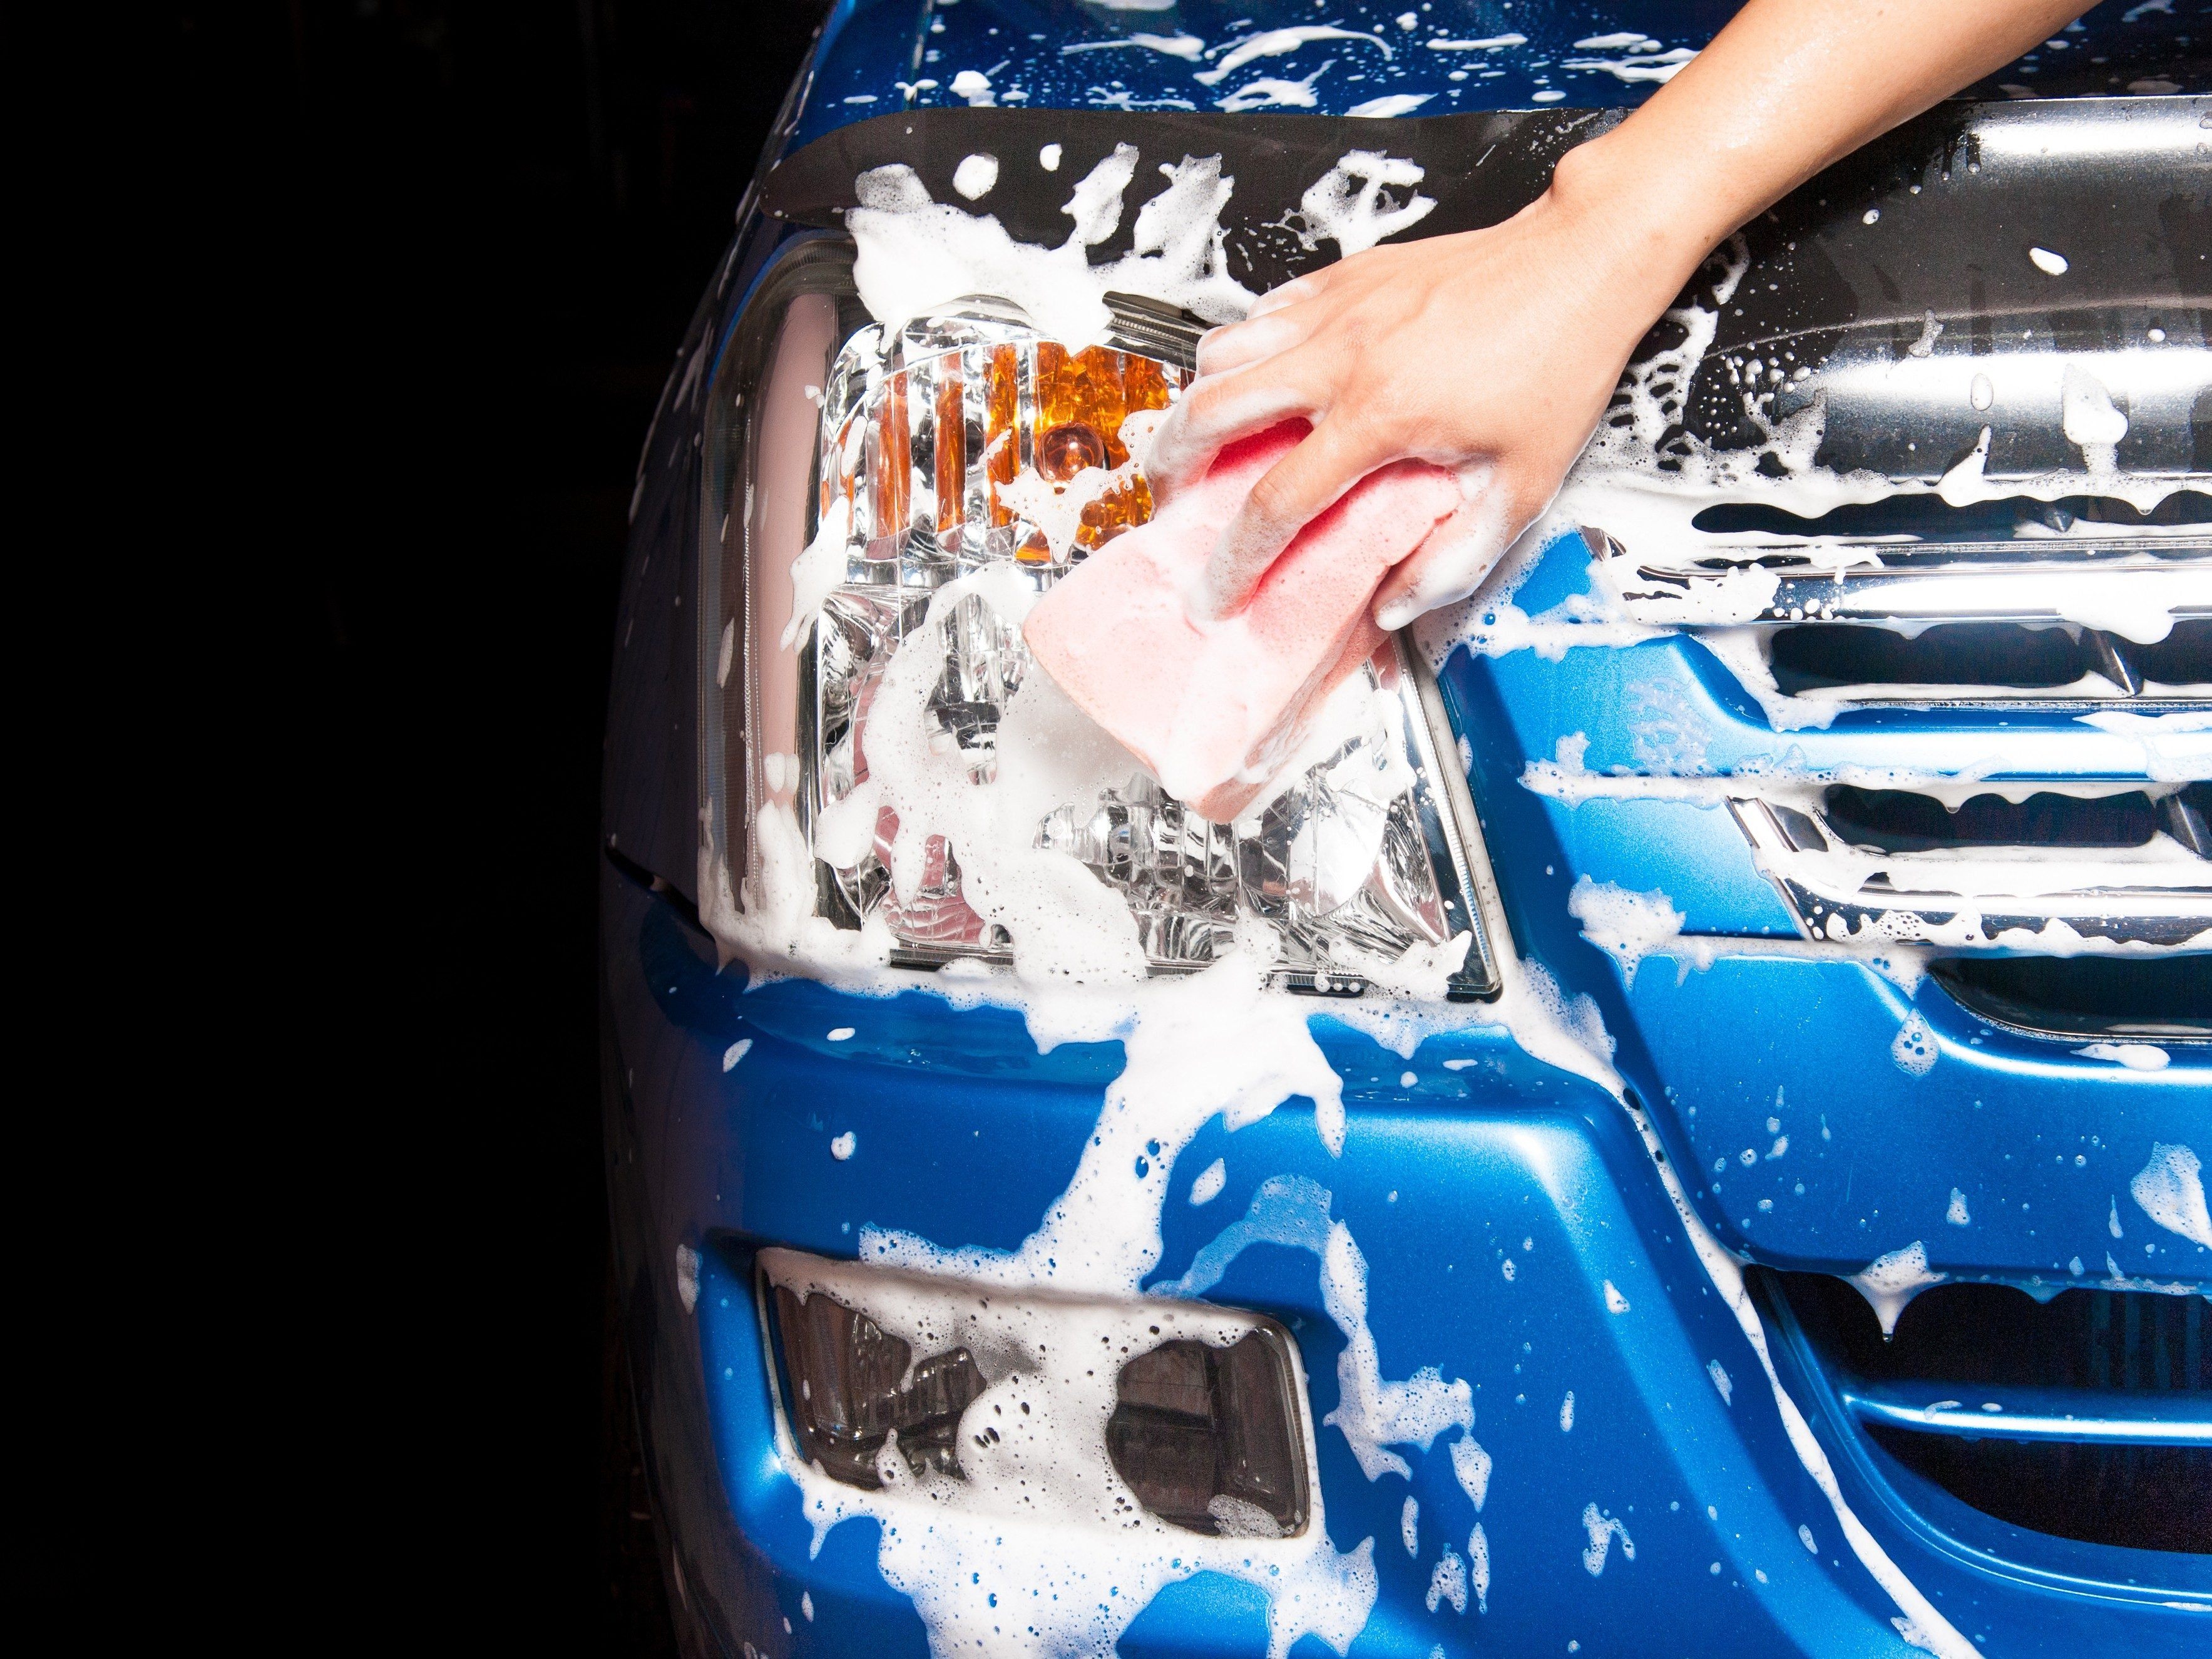 1. Use Shampoo to Wash Your Car